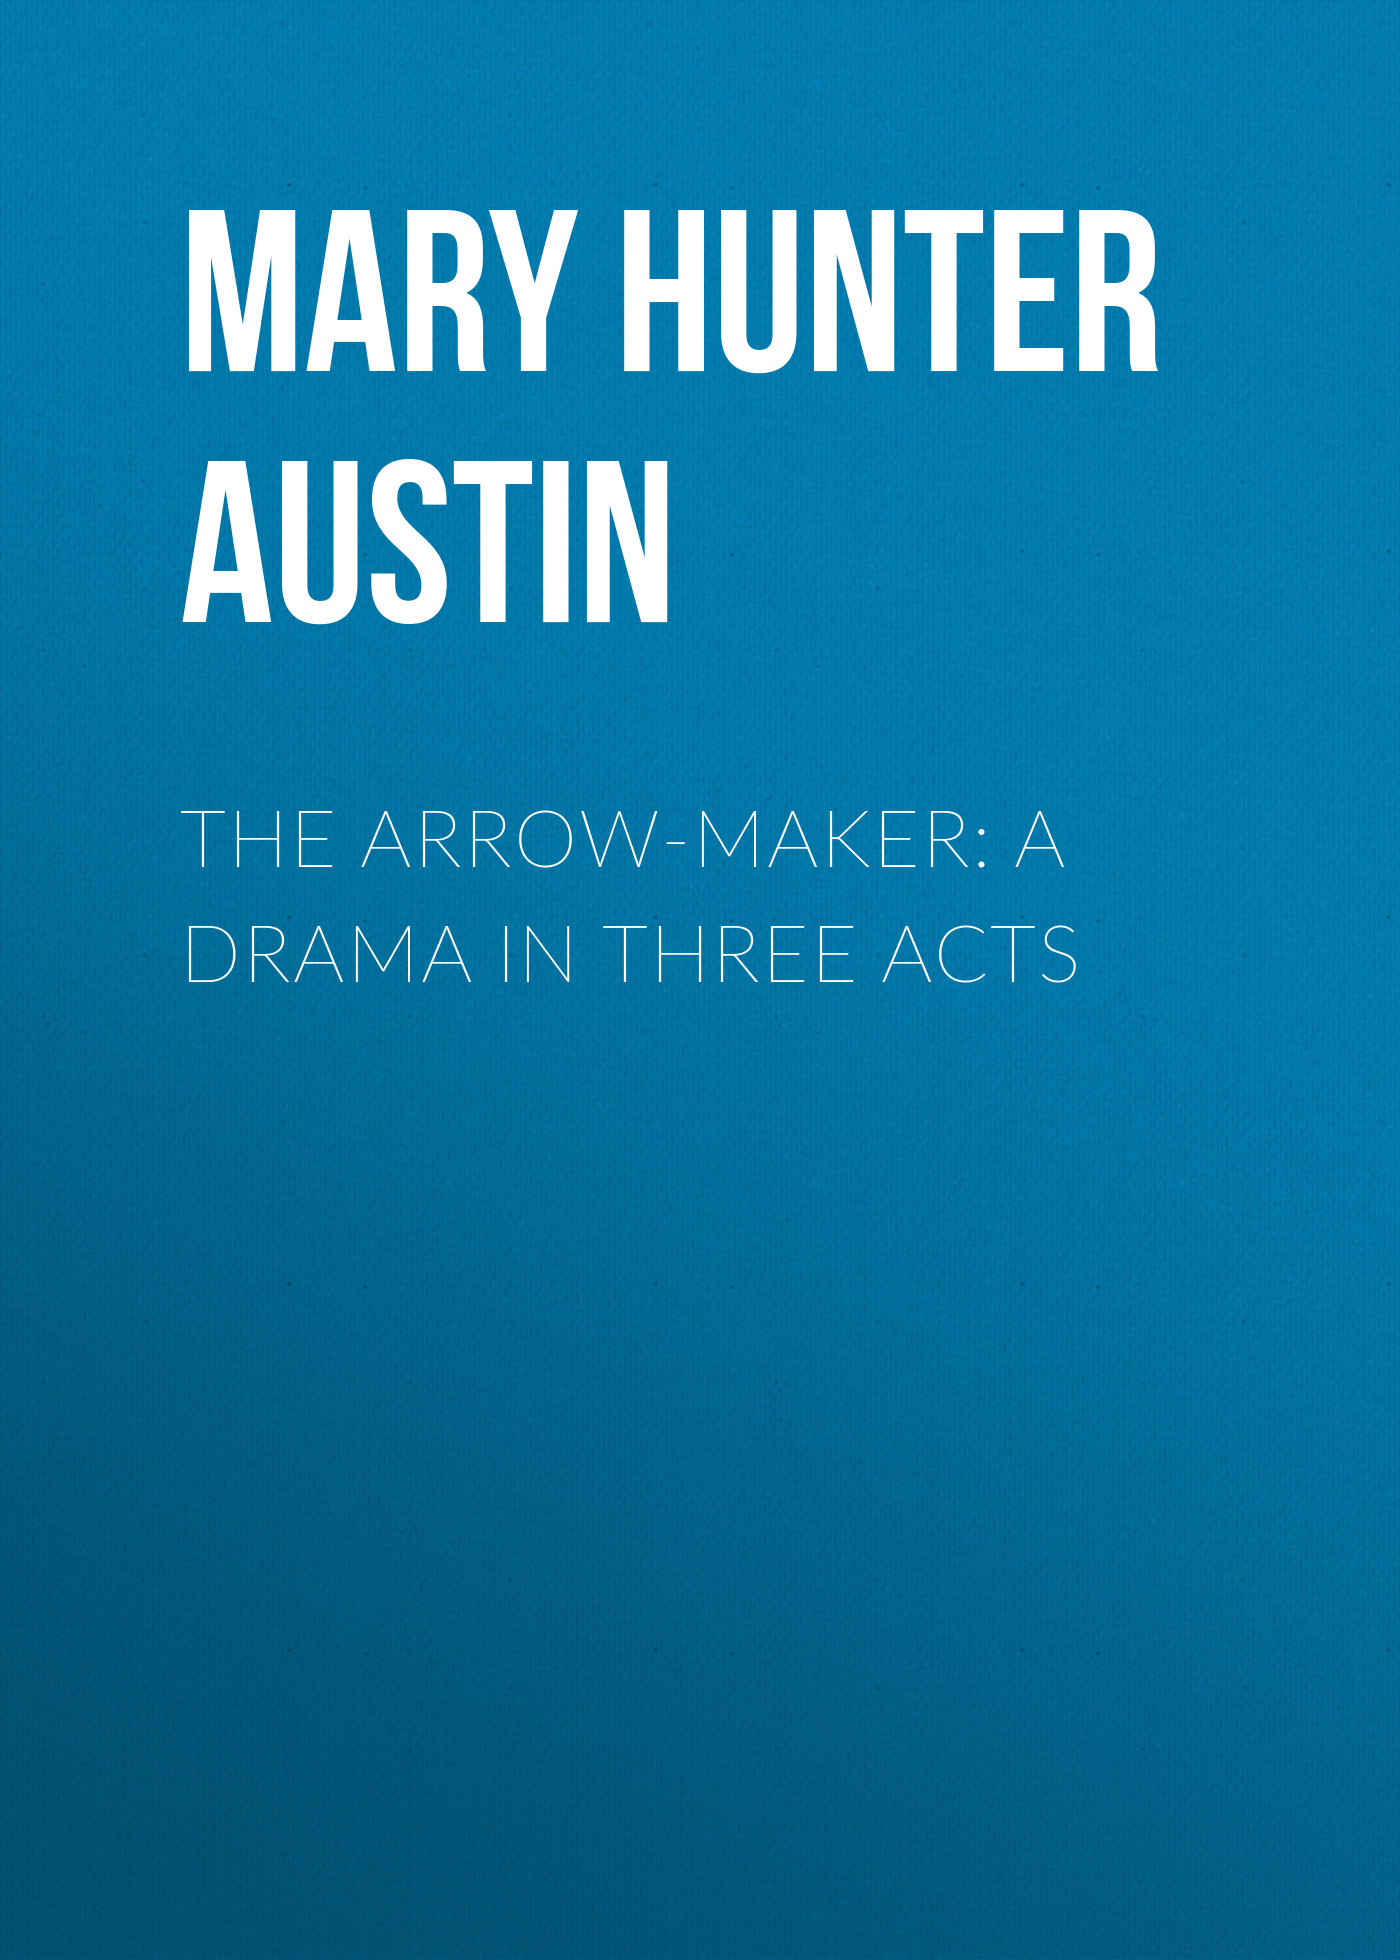 Mary Hunter Austin The Arrow-Maker: A Drama in Three Acts thomas s denison the irish linen peddler a farce in two acts